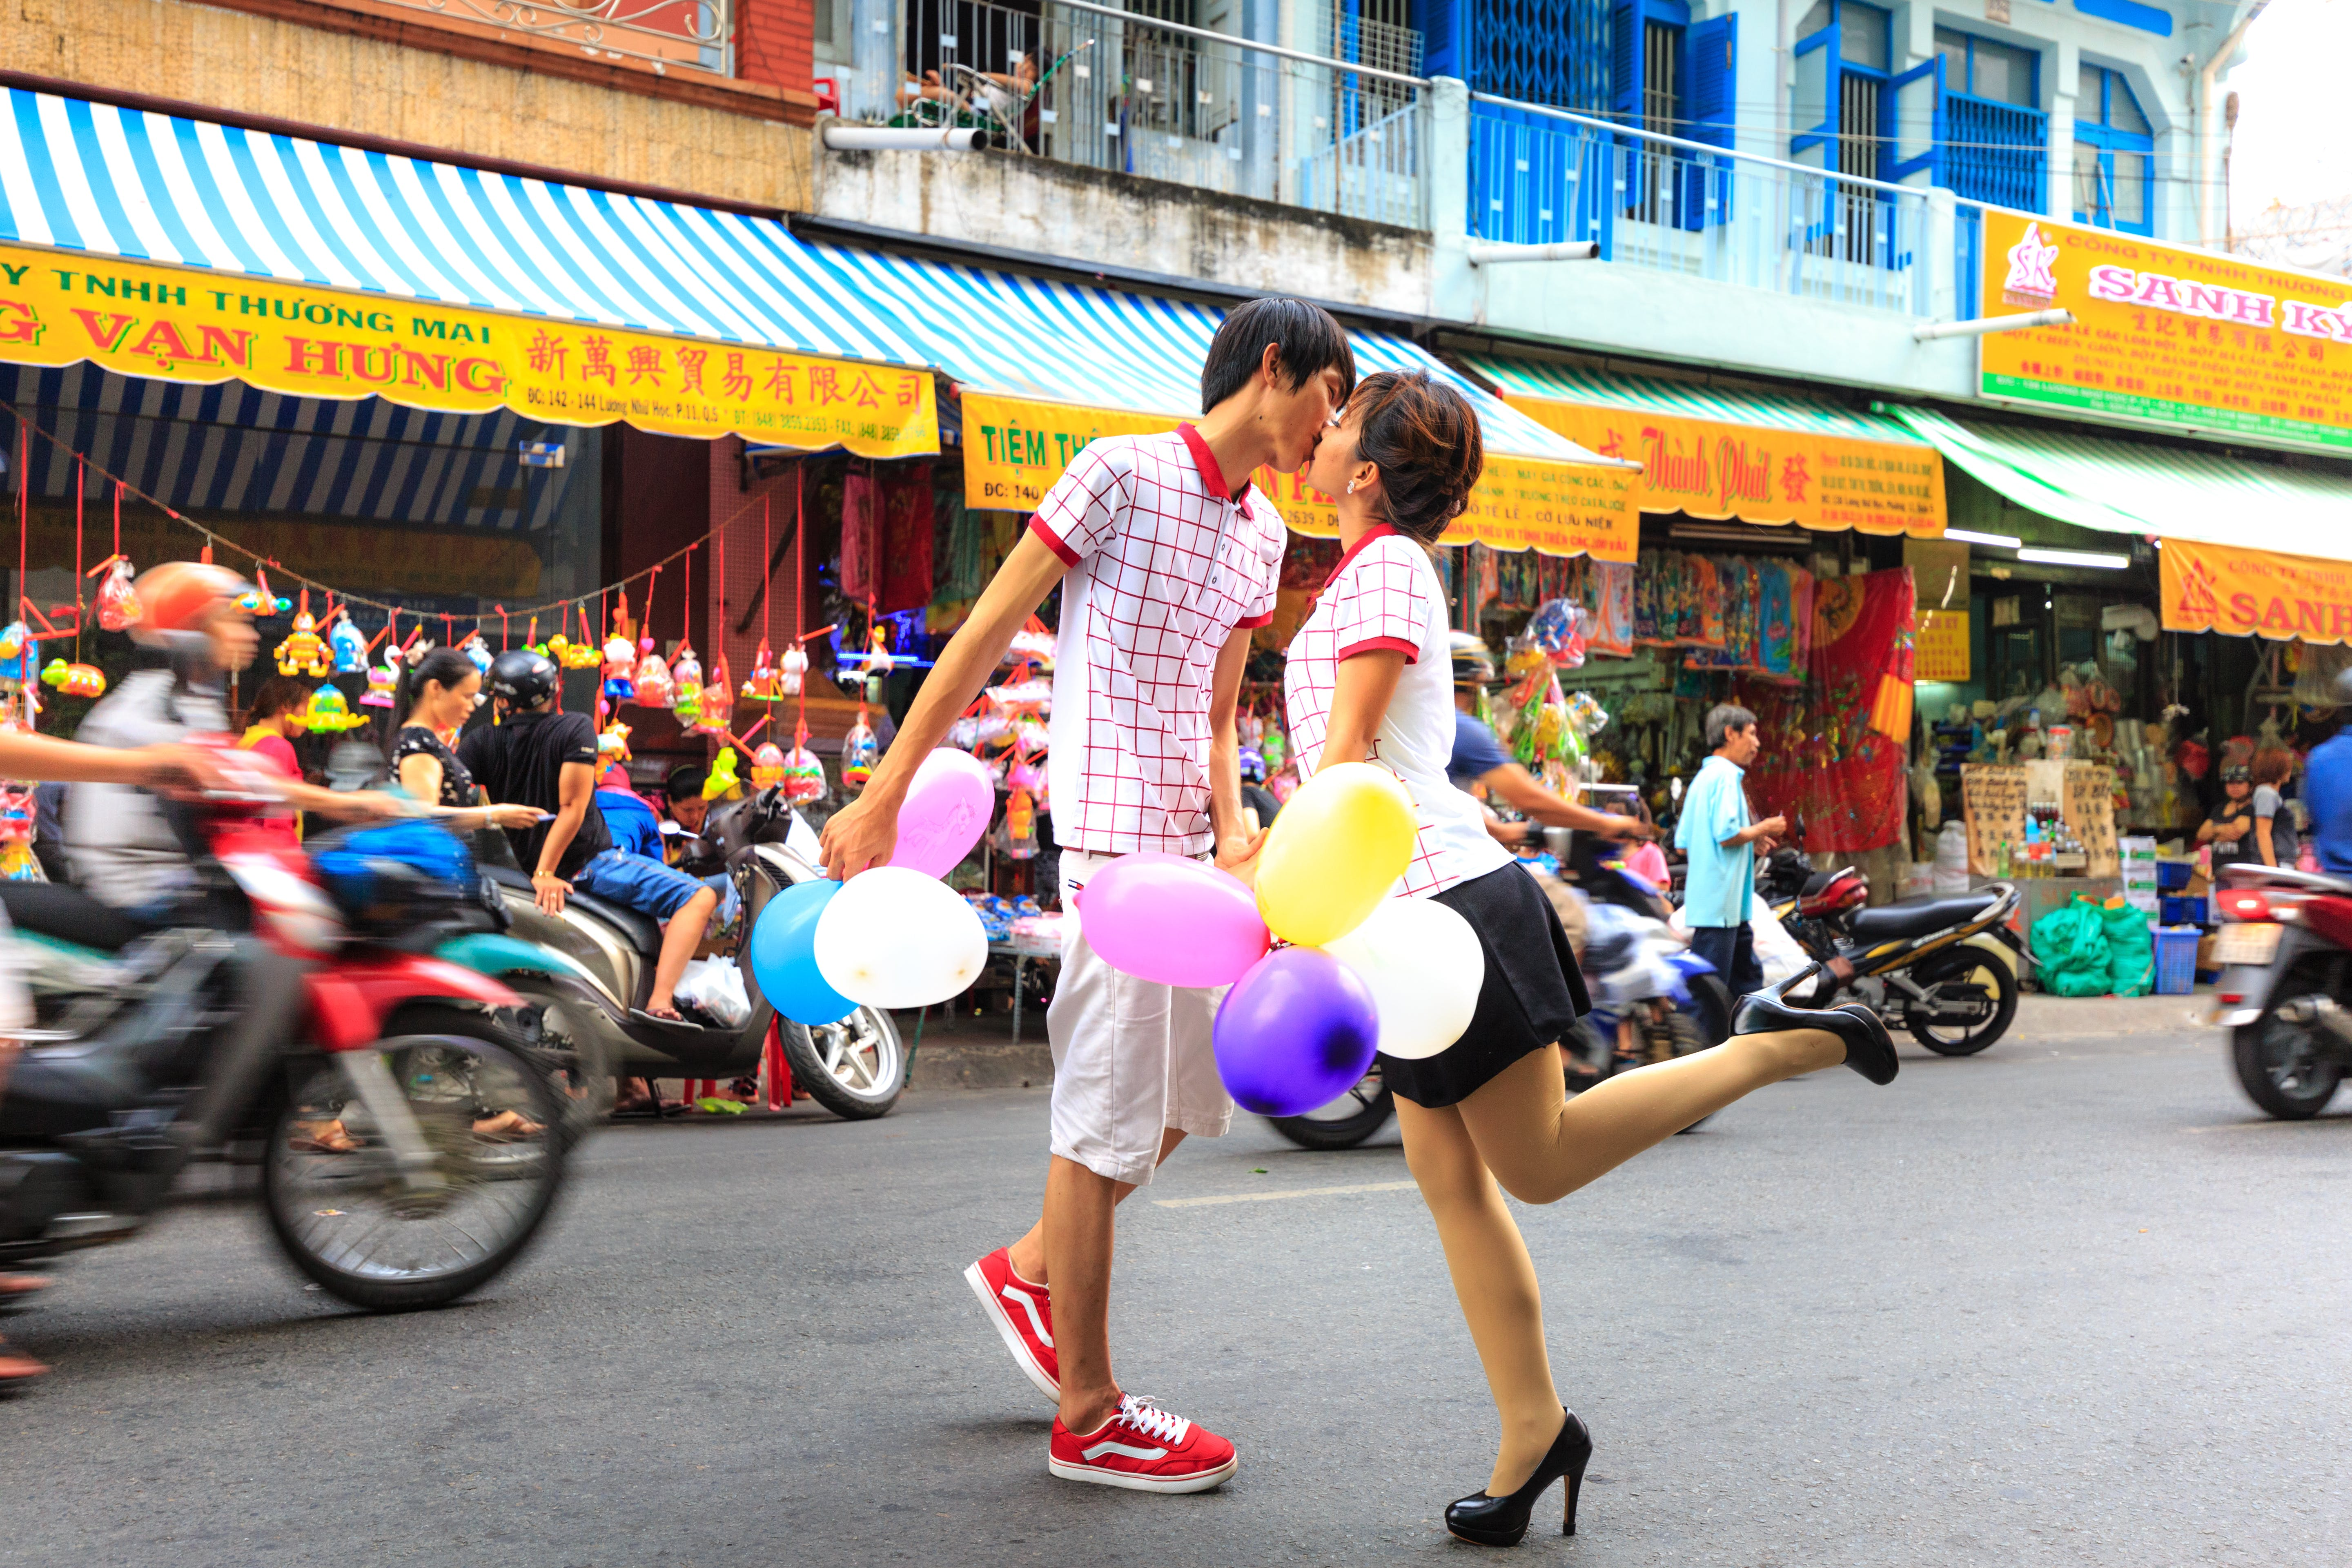 Man Kissing Woman While Holding Balloons